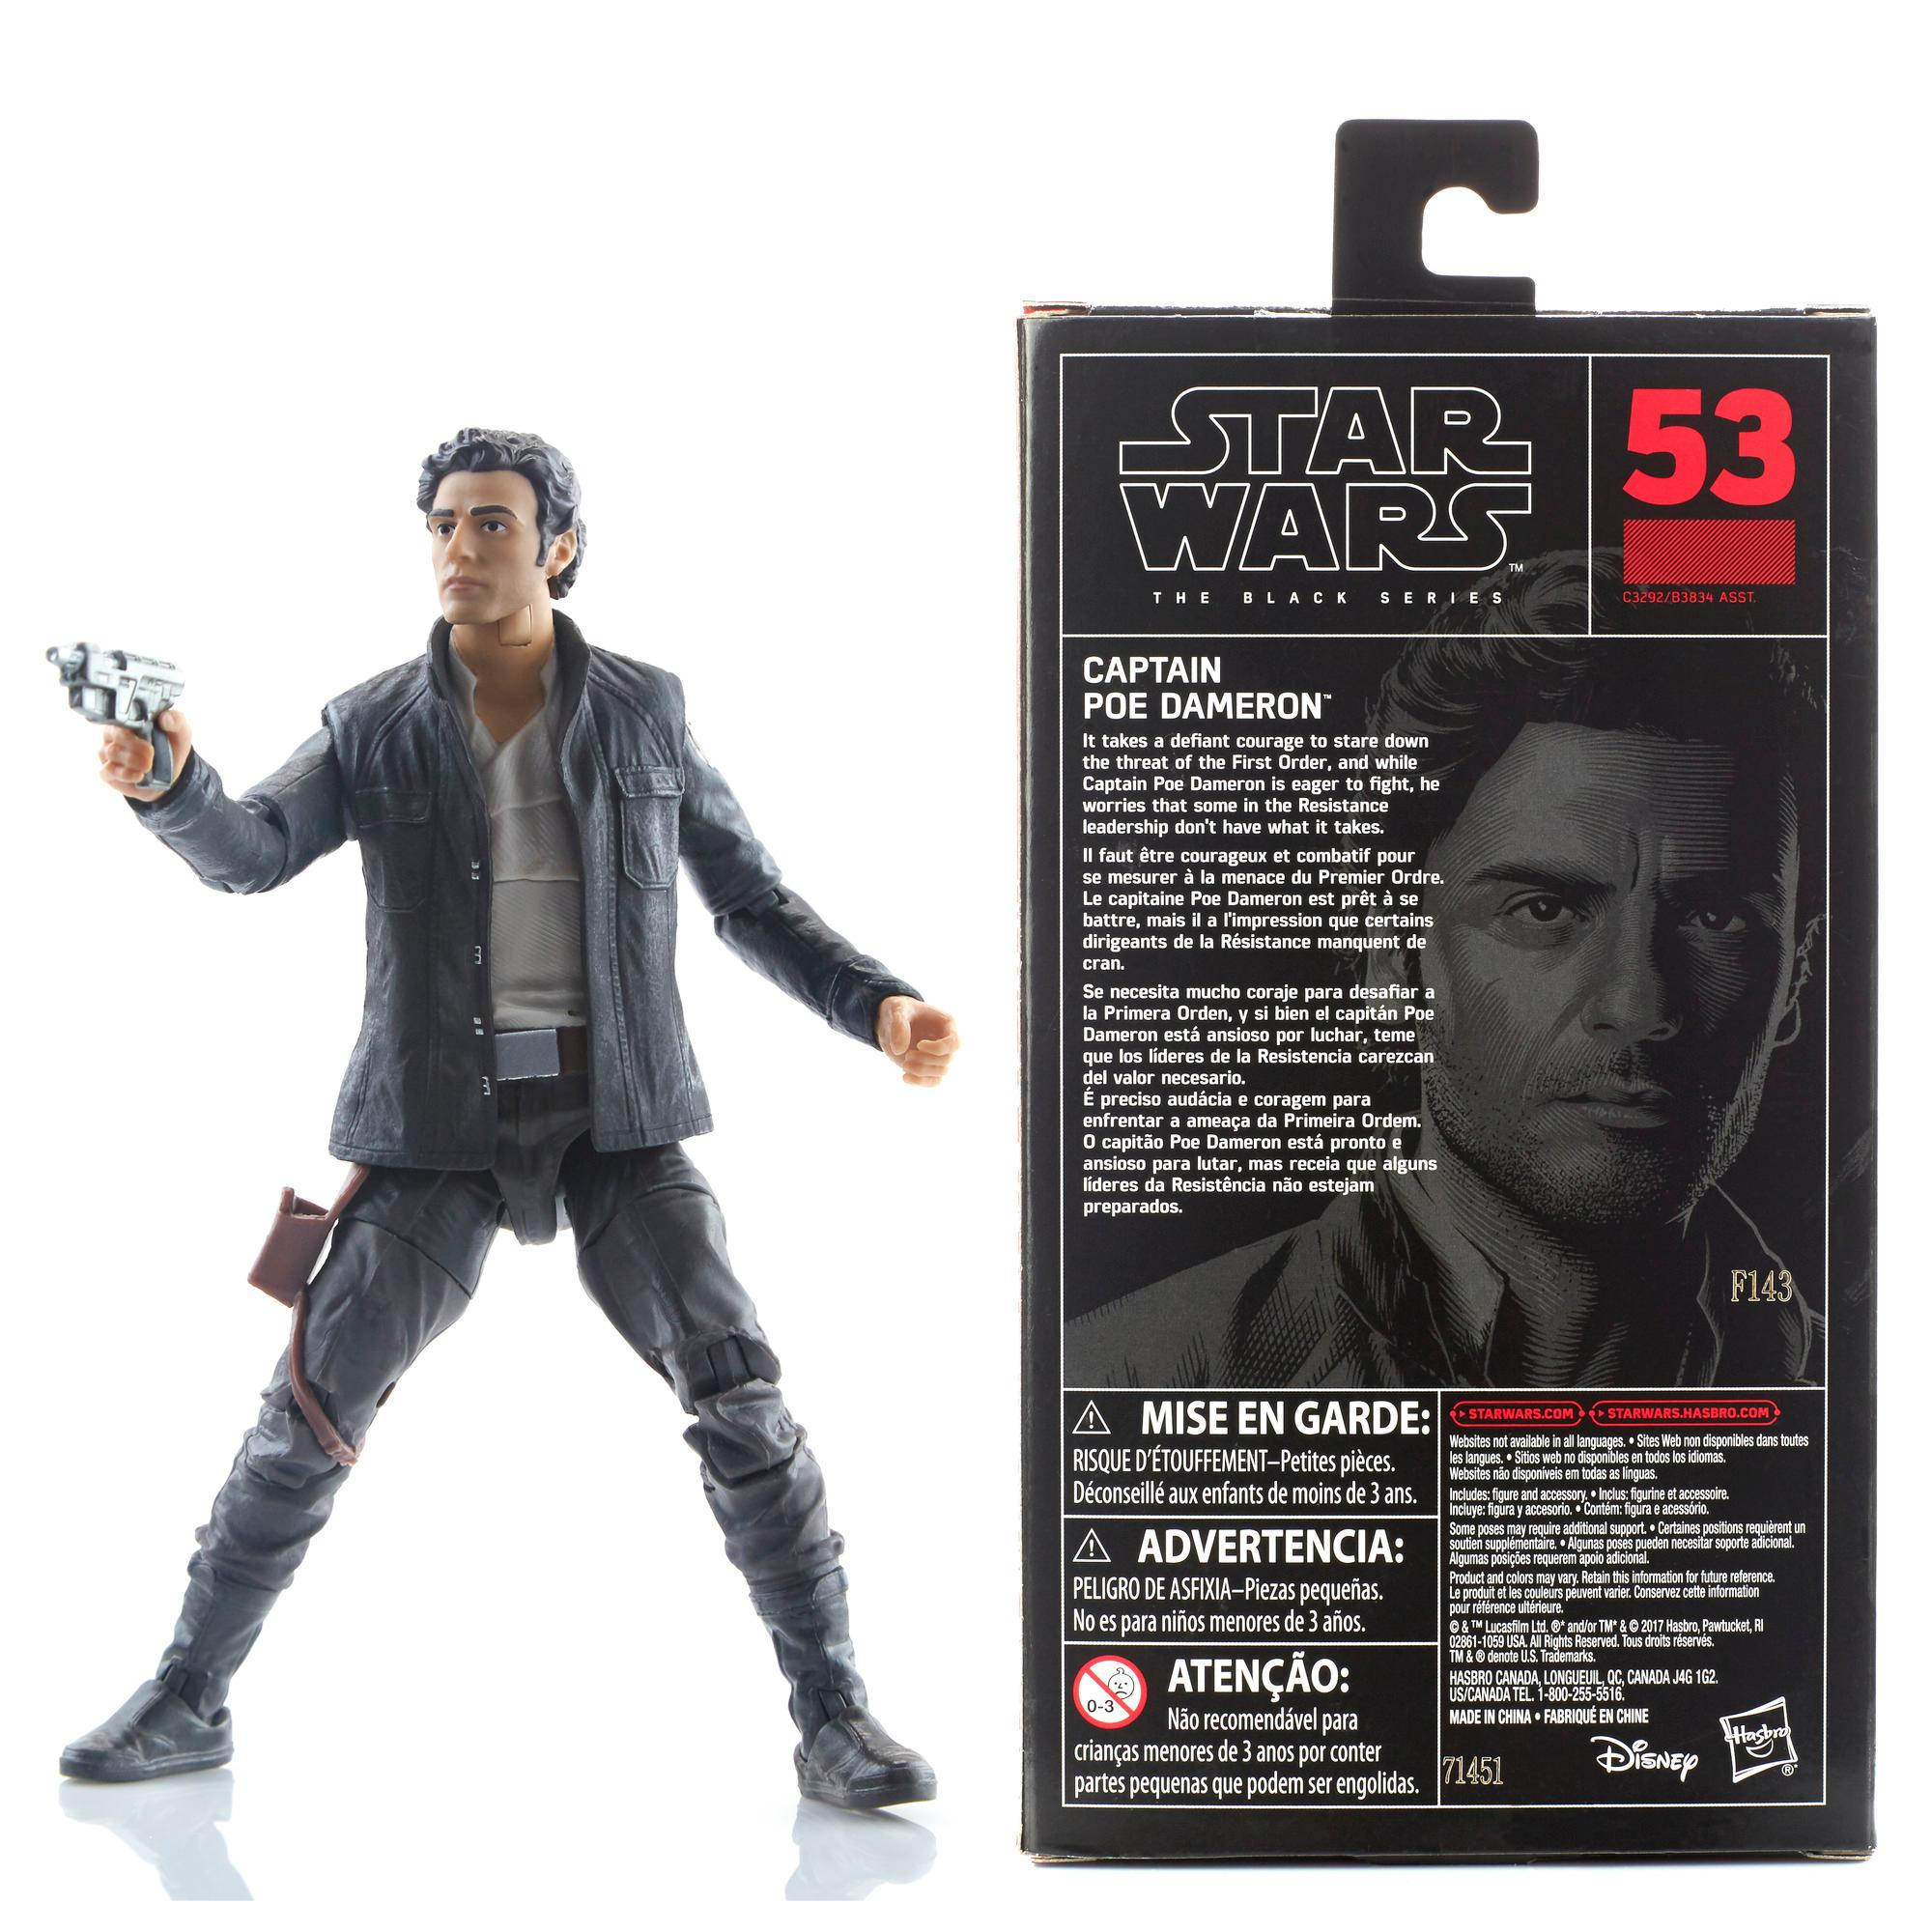 Star Wars The Black Series Captain Poe Dameron